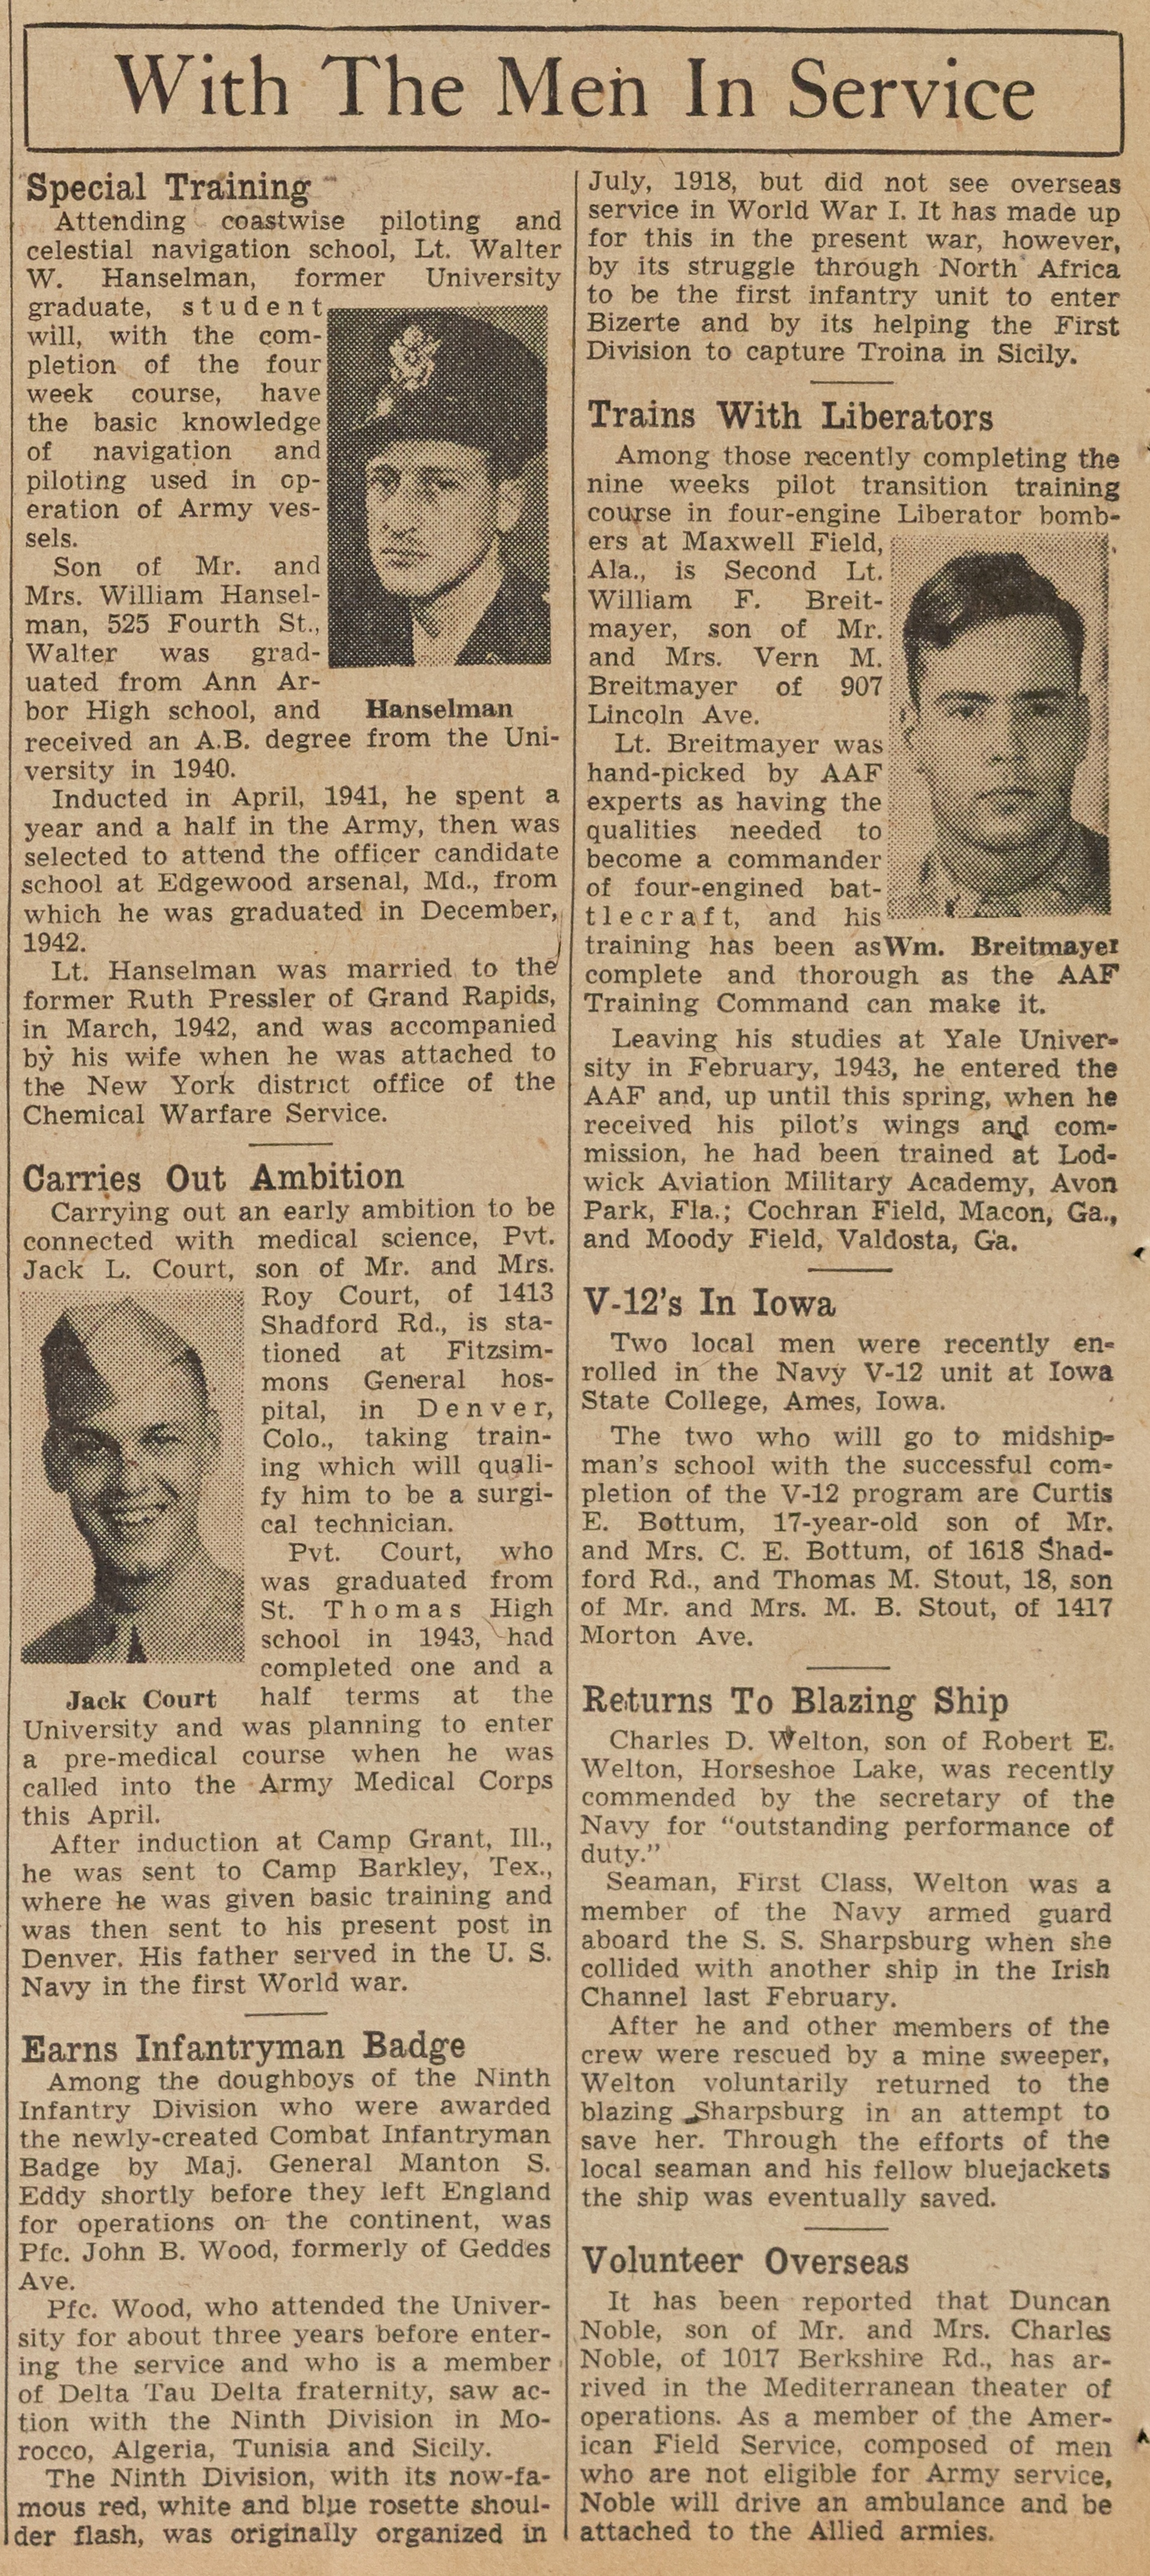 With The Men In Service: July 22, 1944 image